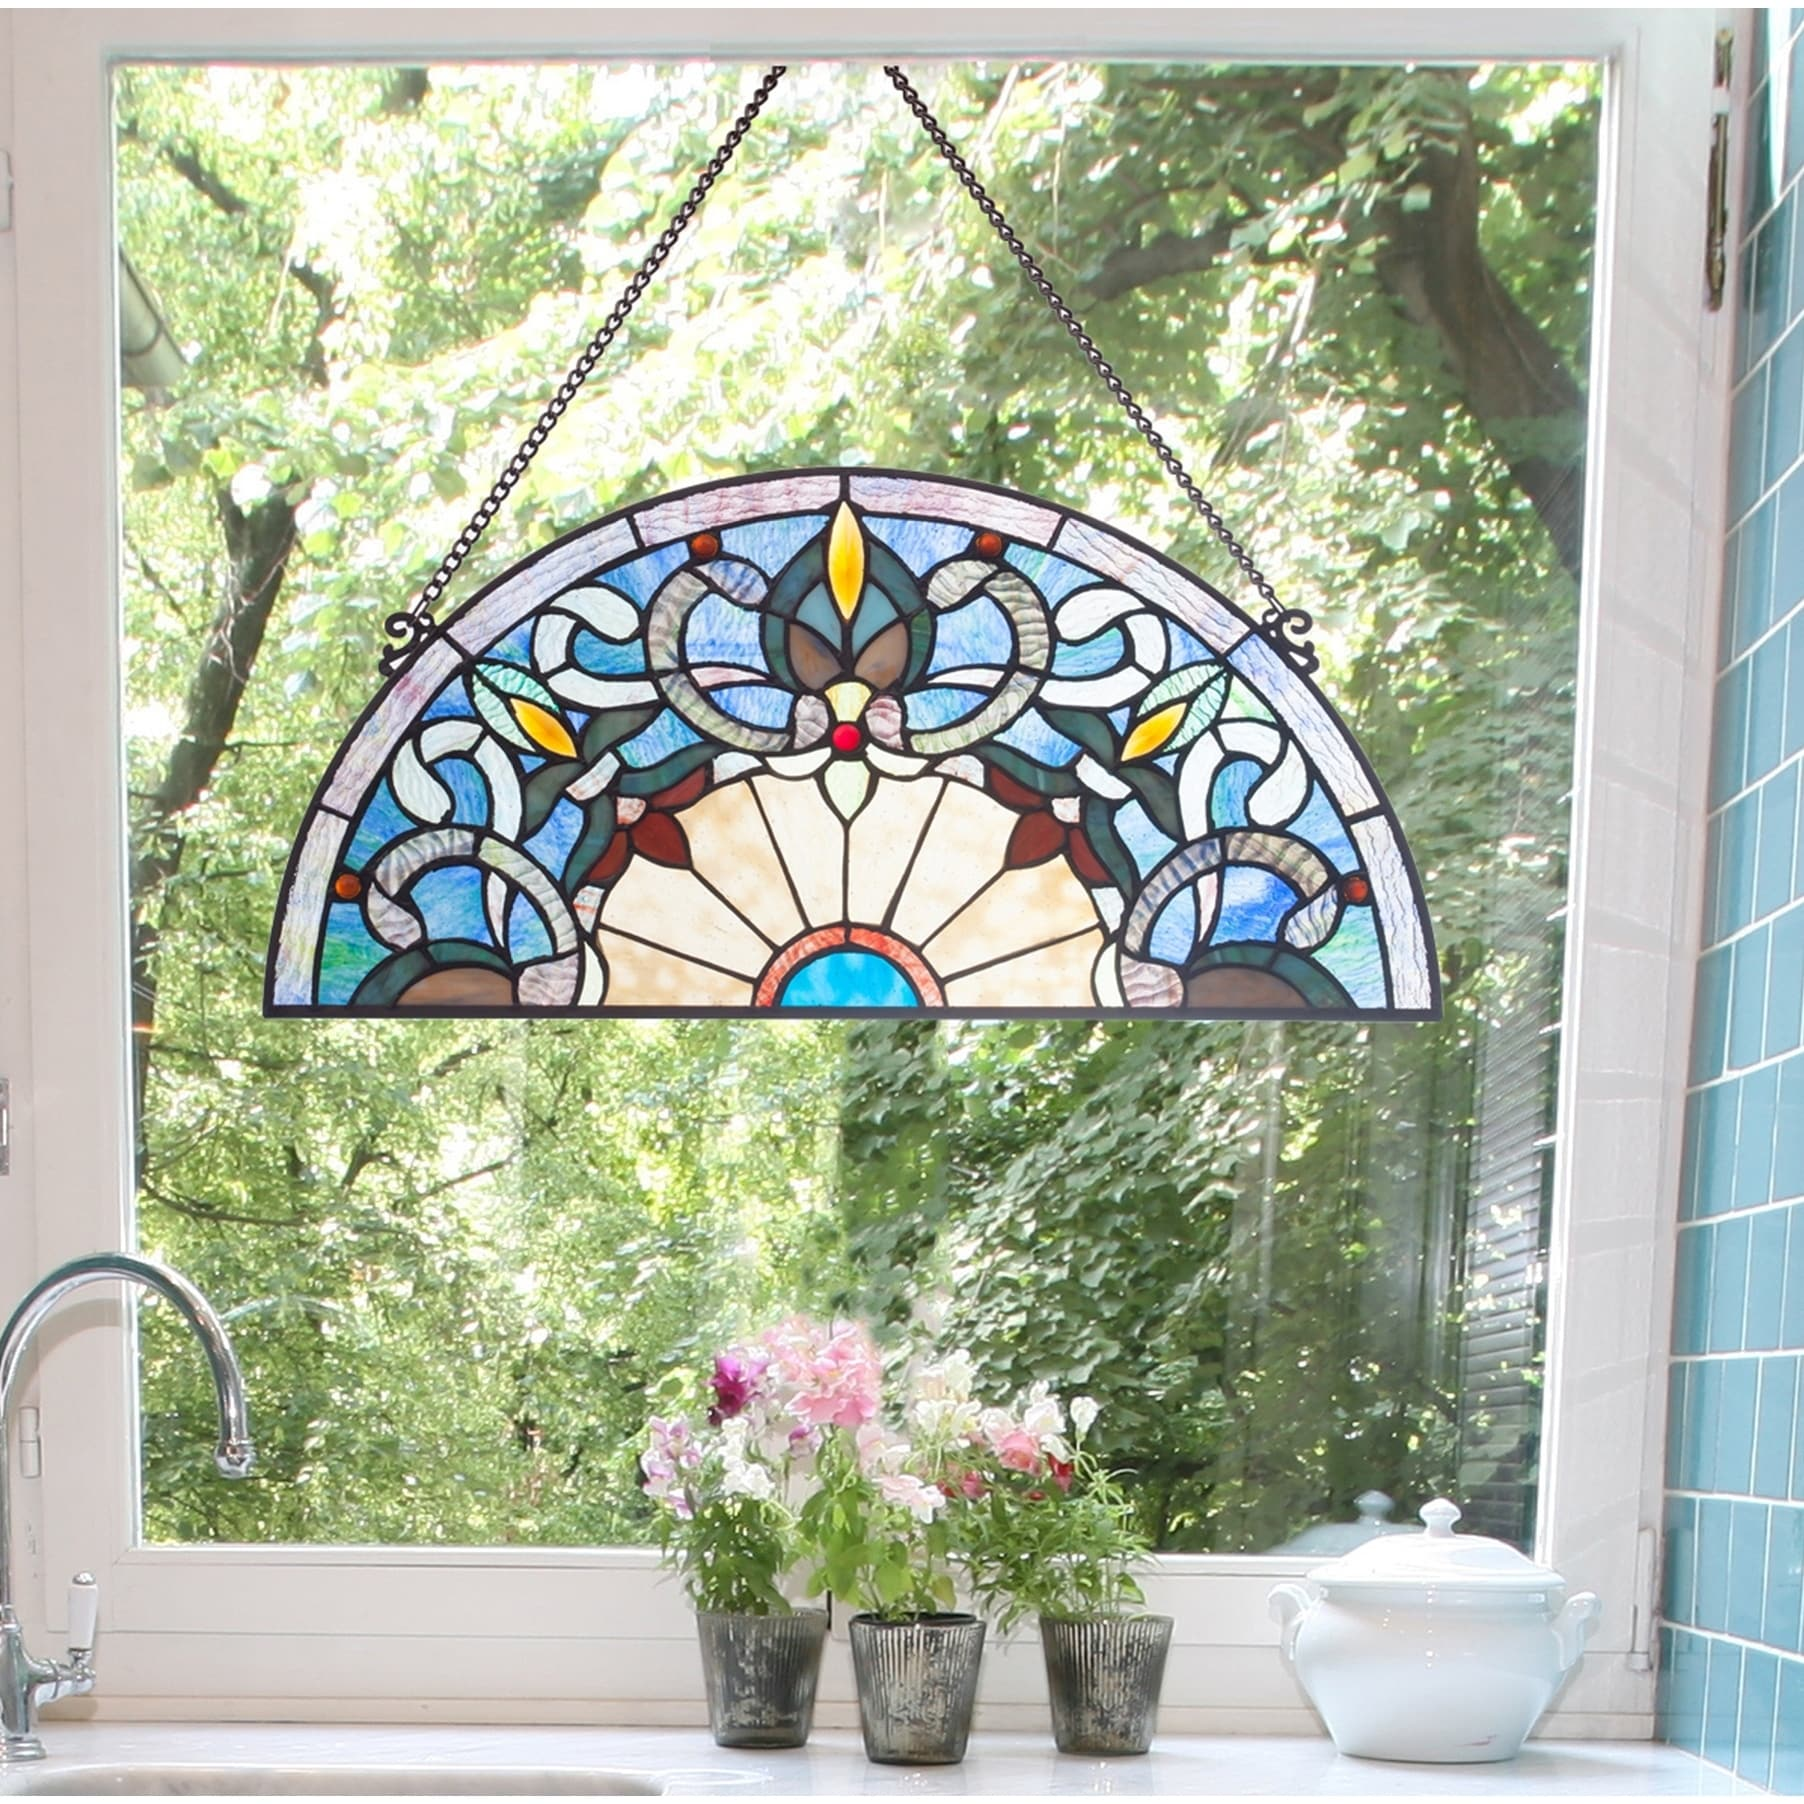 Shop Black Friday Deals On River Of Goods Victorian Corista Half Moon Stained Glass Window Panel Overstock 23040700 Blue